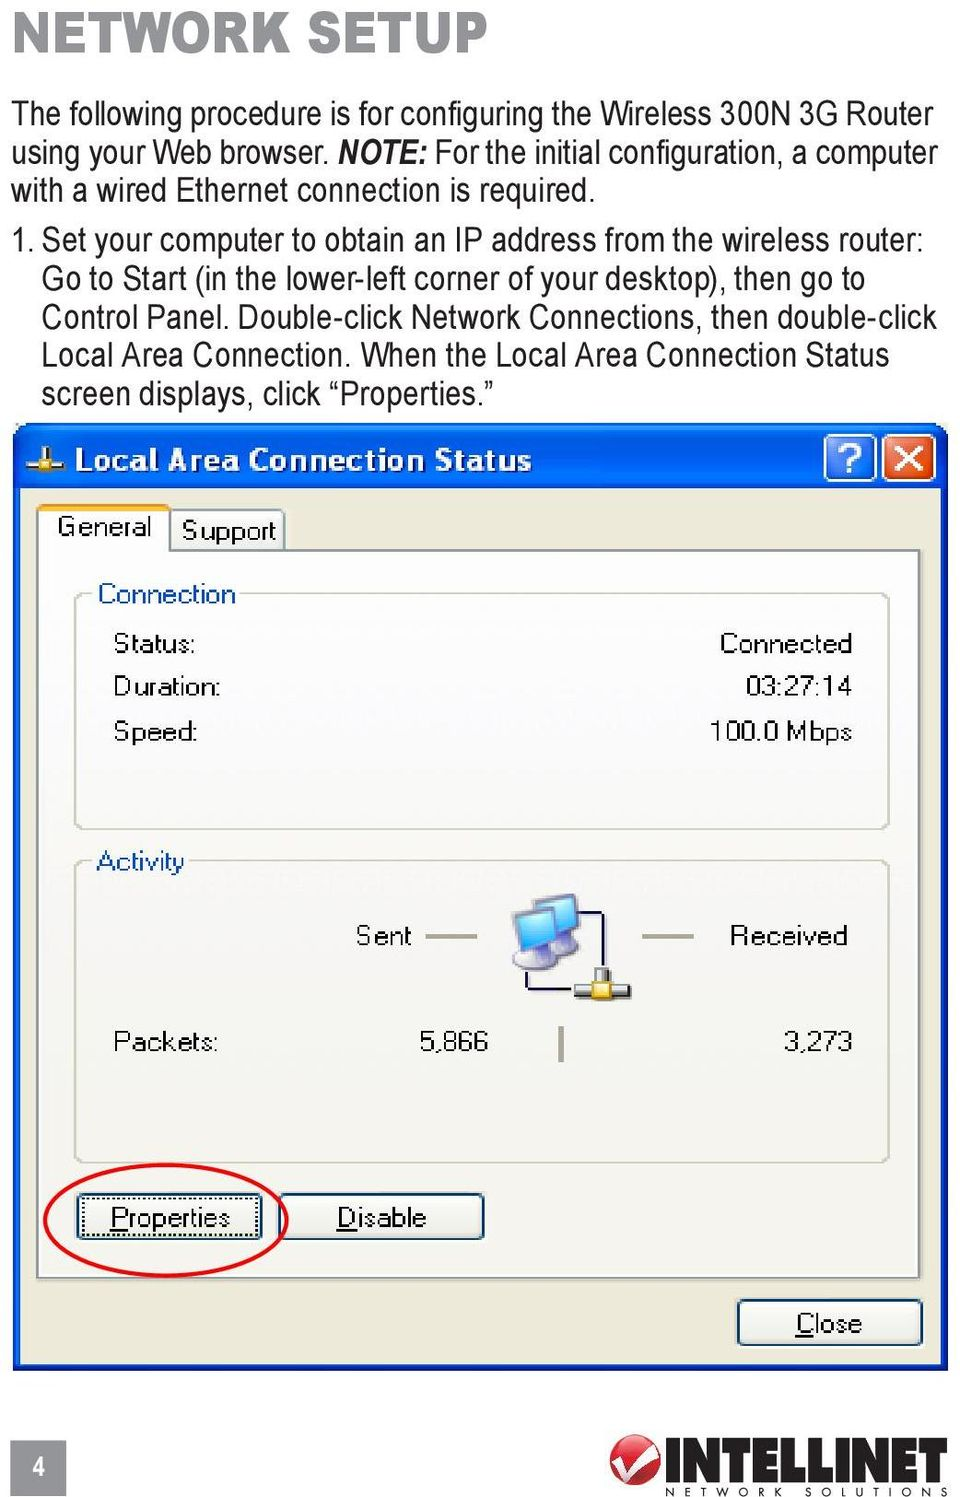 Set your computer to obtain an IP address from the wireless router: Go to Start (in the lower-left corner of your desktop),